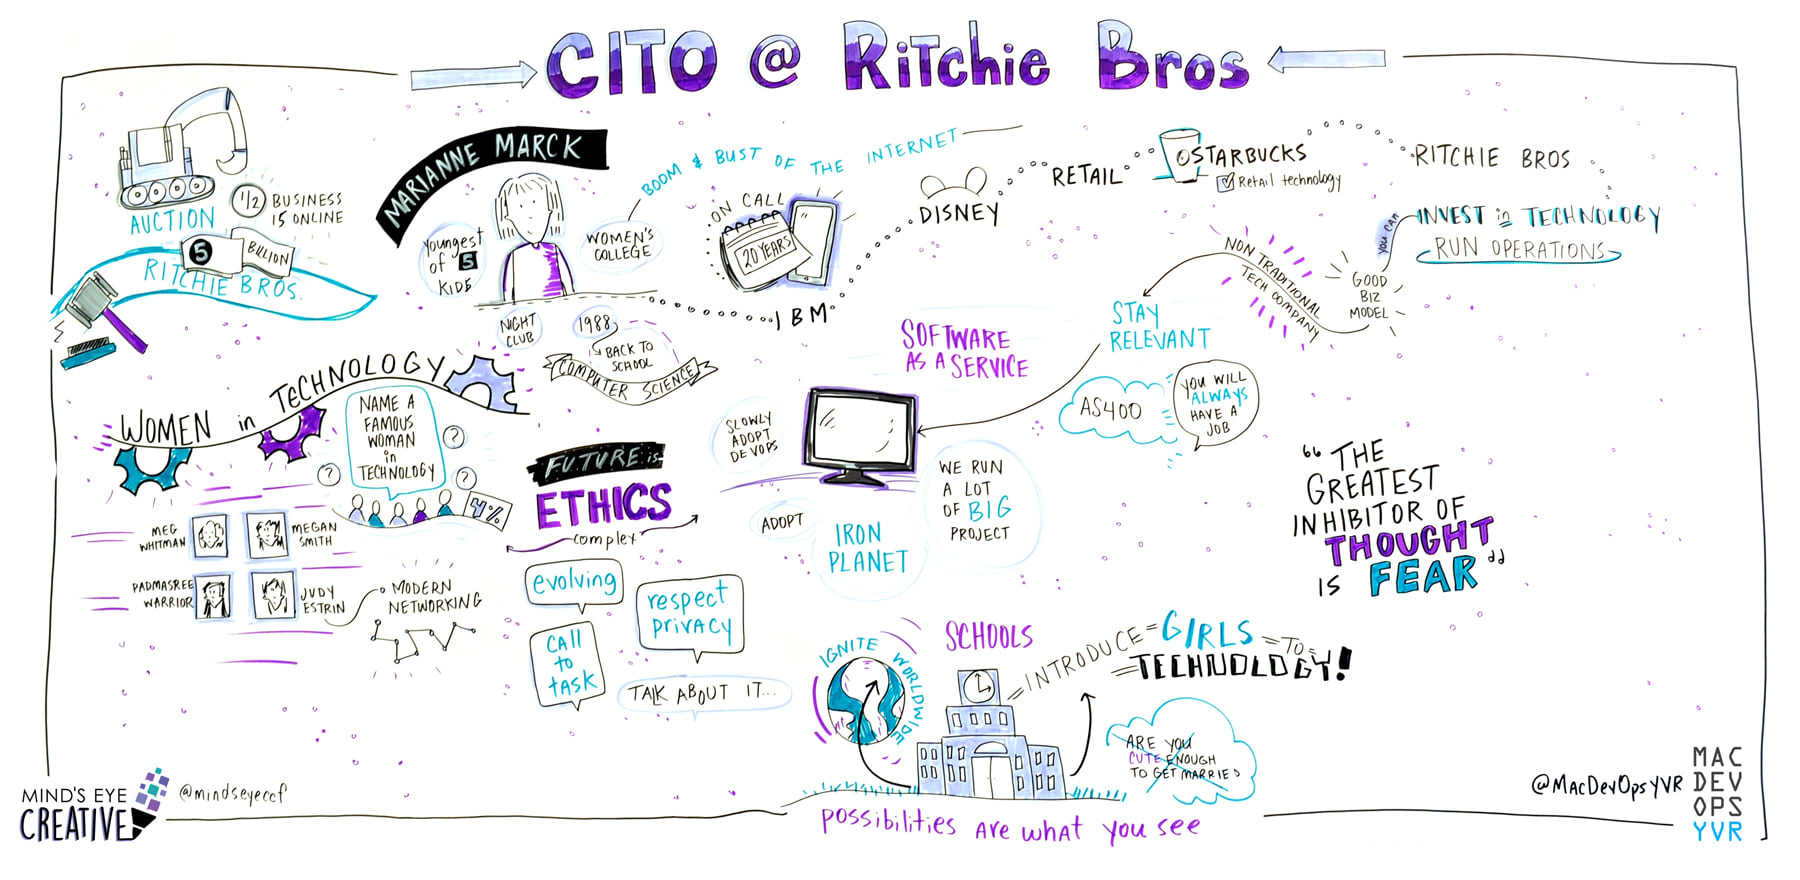 graphic recording from Mac DevOps by Minds Eye Creative